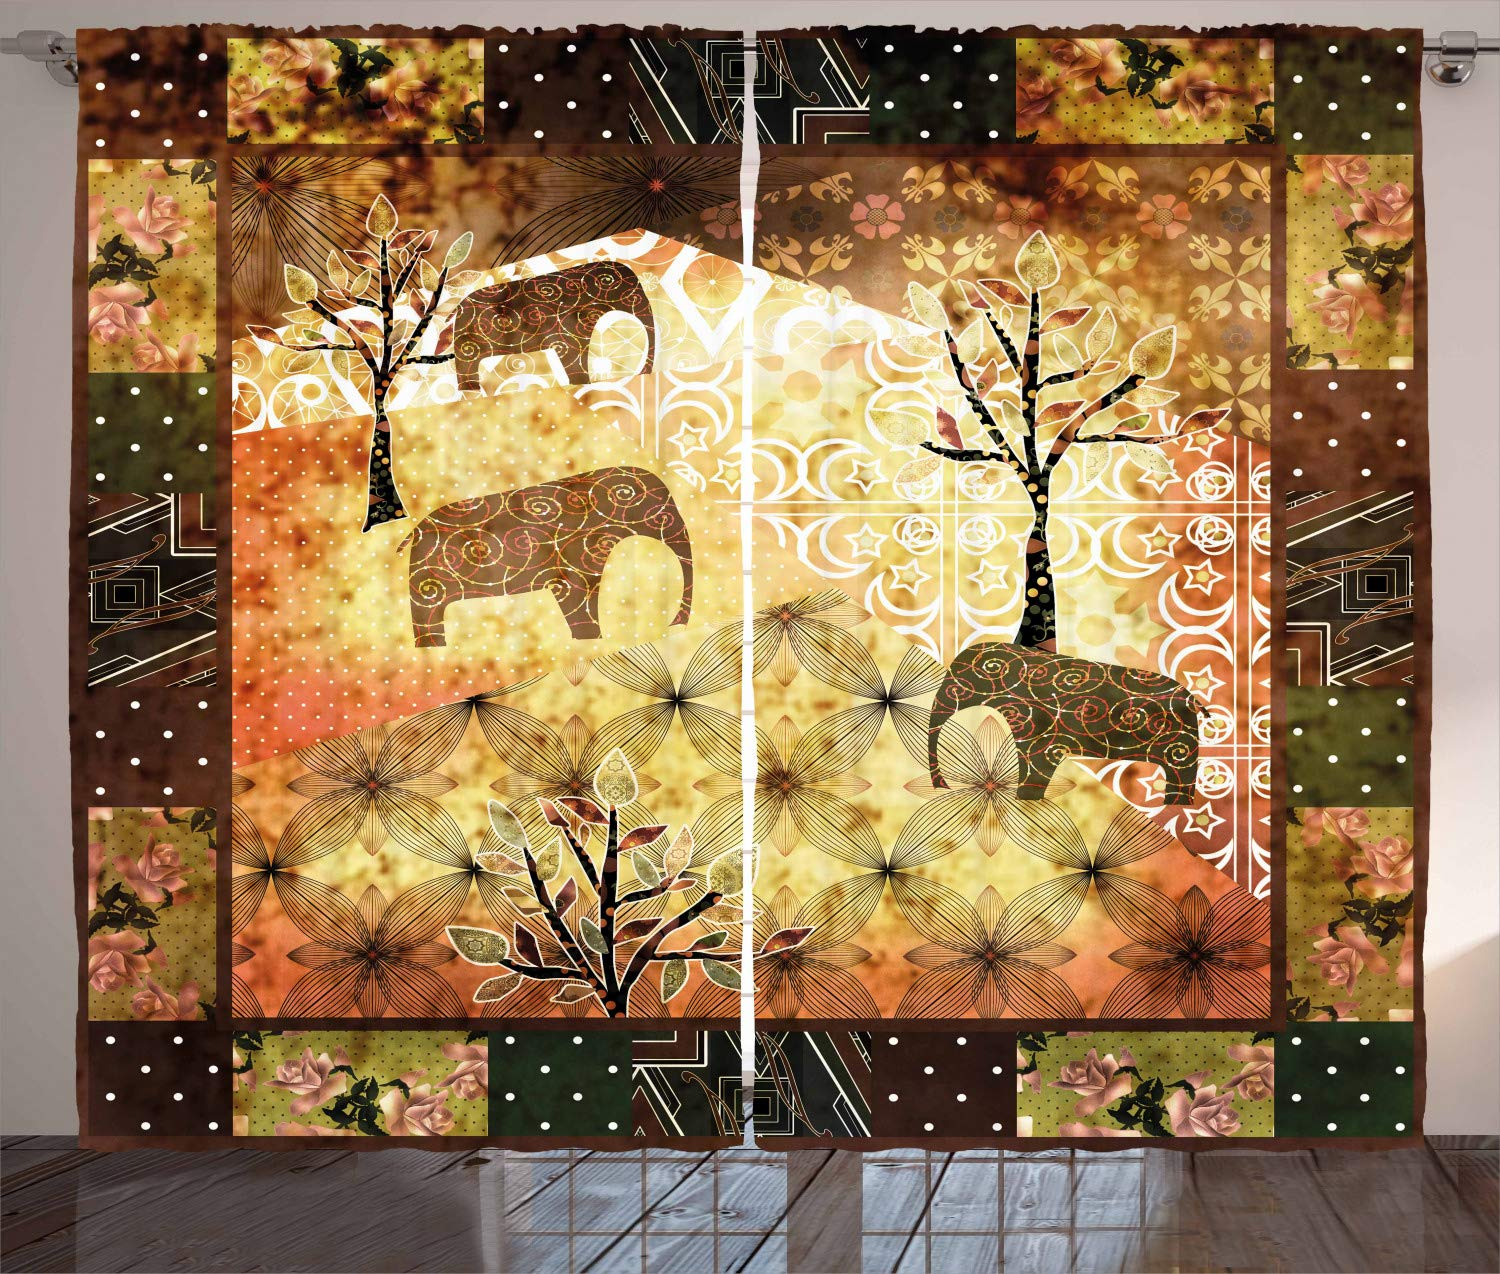 Living Room Bedroom Window Drapes 2 Panel Set 108 W X 63 L Inches Electric Guitar in The Wooden Room Country House Interior Music Theme Black Brown Ambesonne Popstar Party Curtains